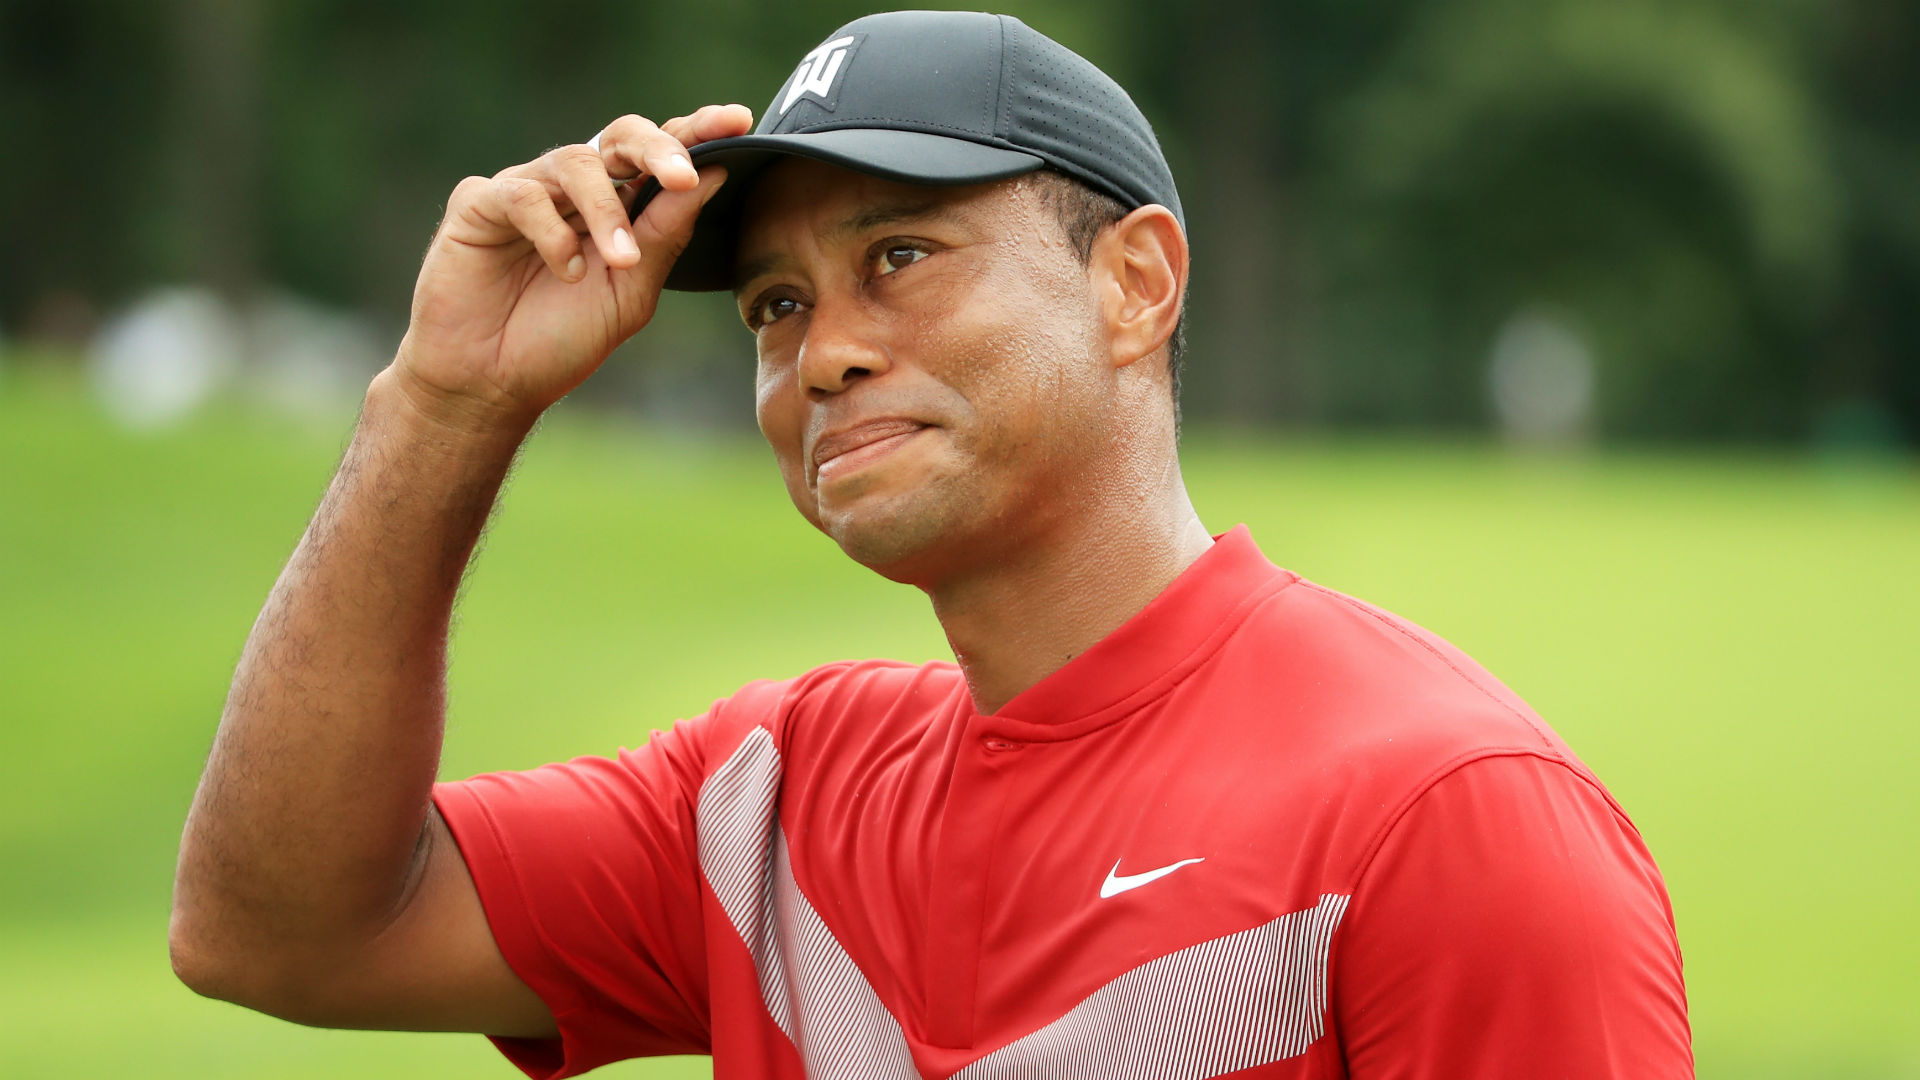 Tiger Woods on missing Tour Championship: 'I'll be watching the guys on TV'